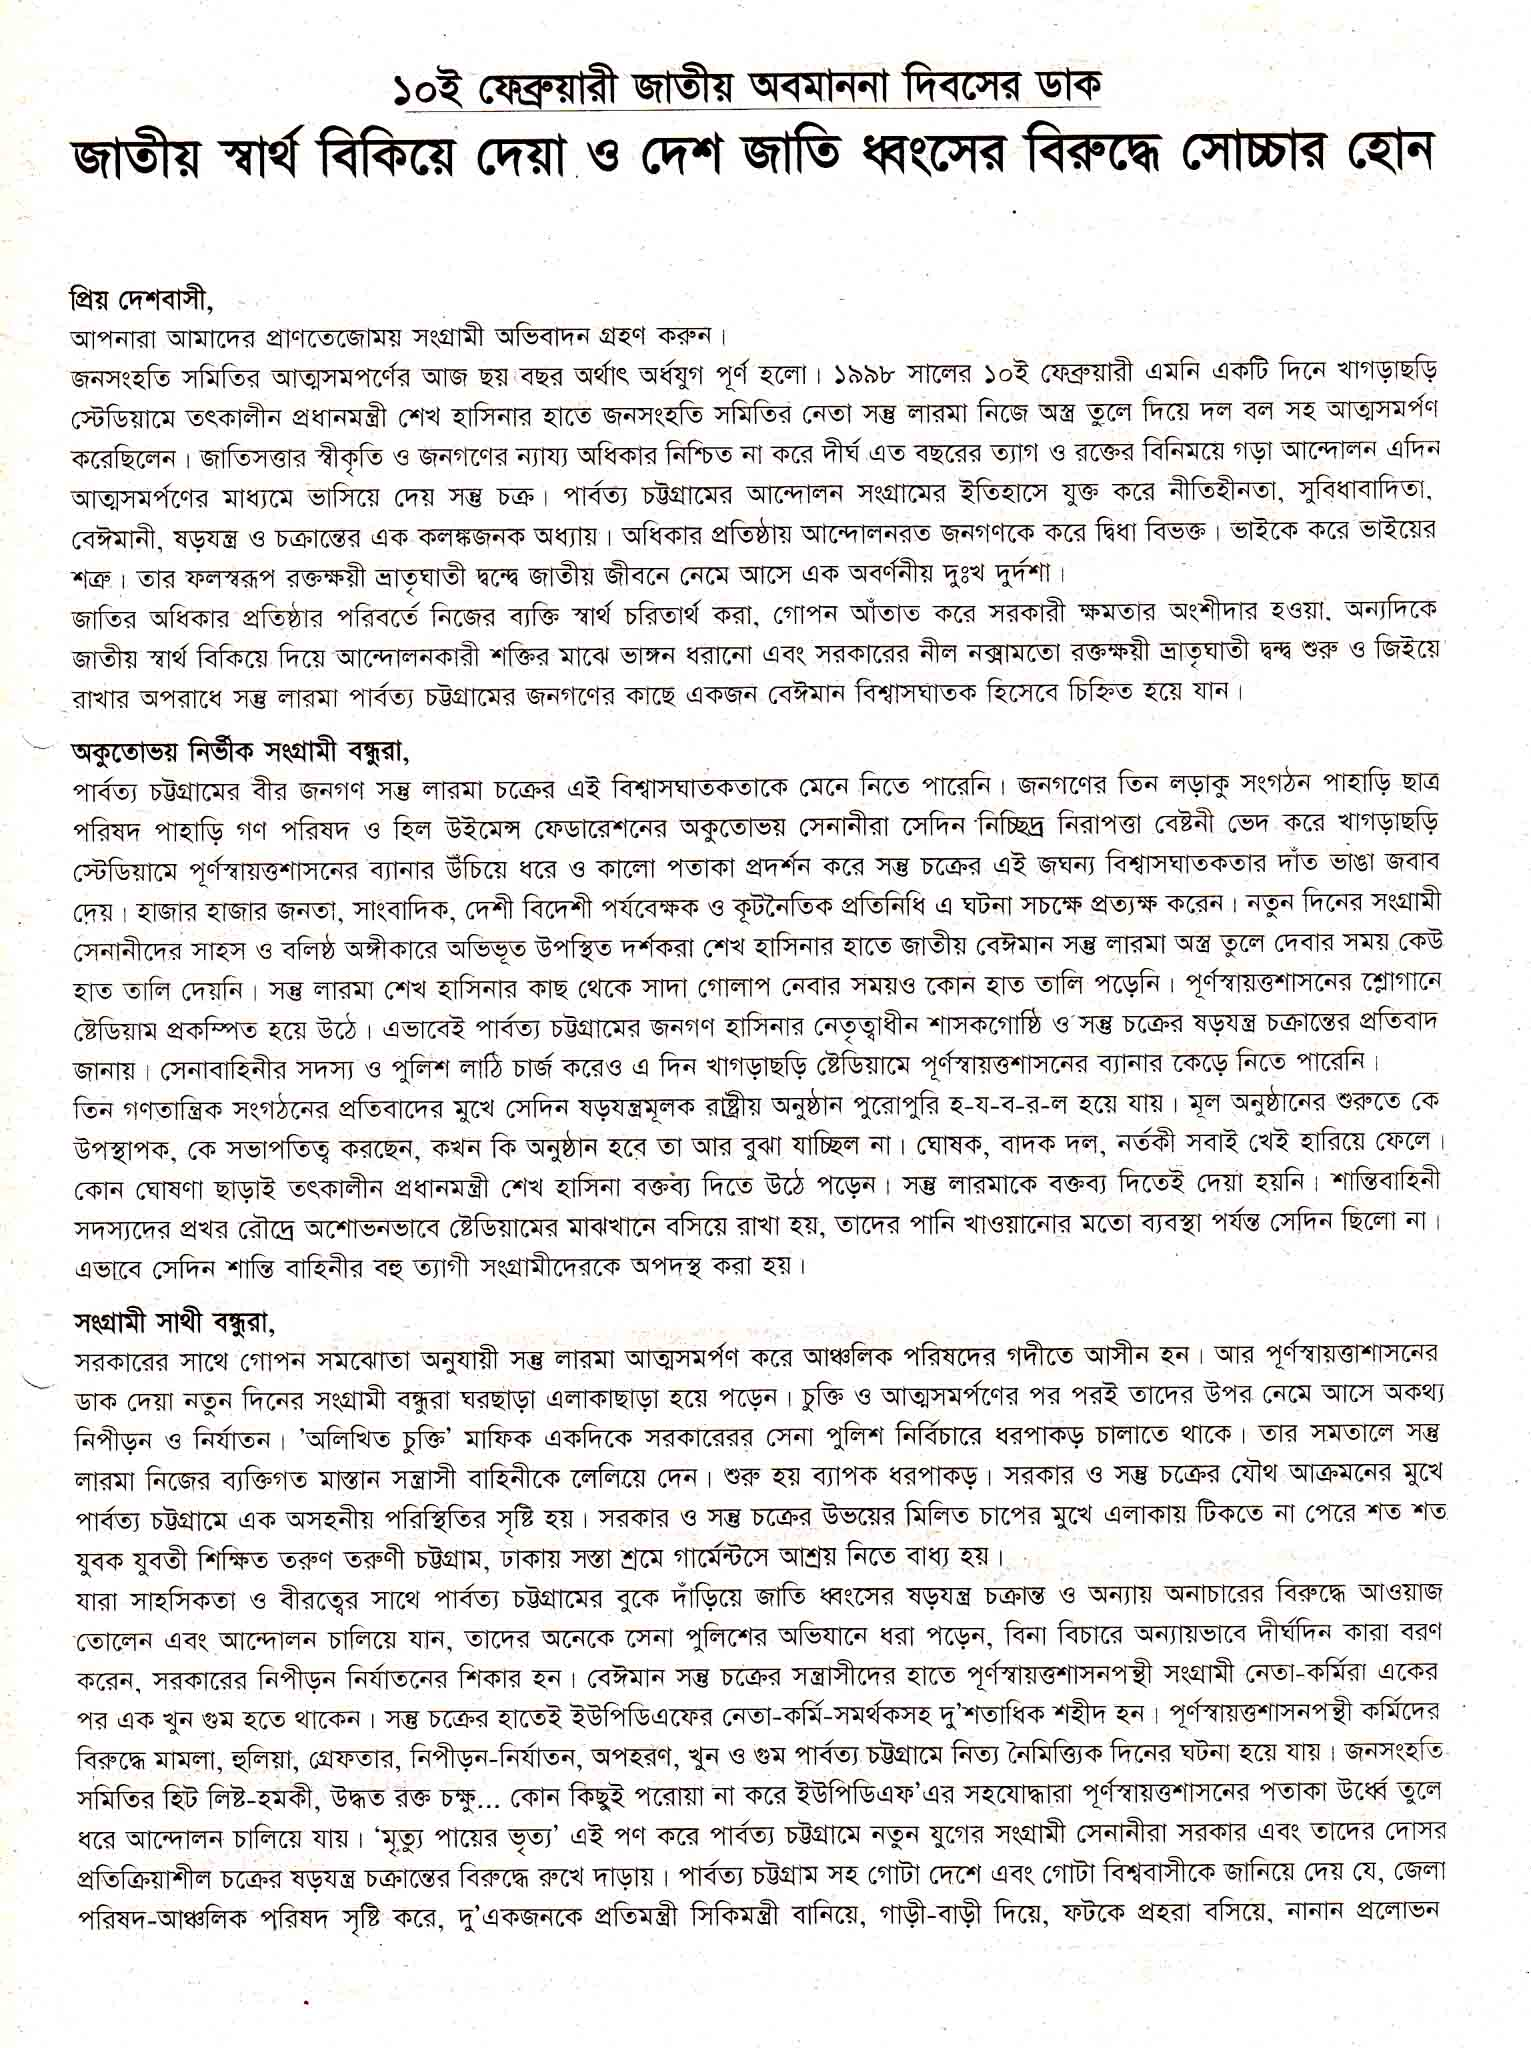 5-Leaflet on 10th February 2004, page-1